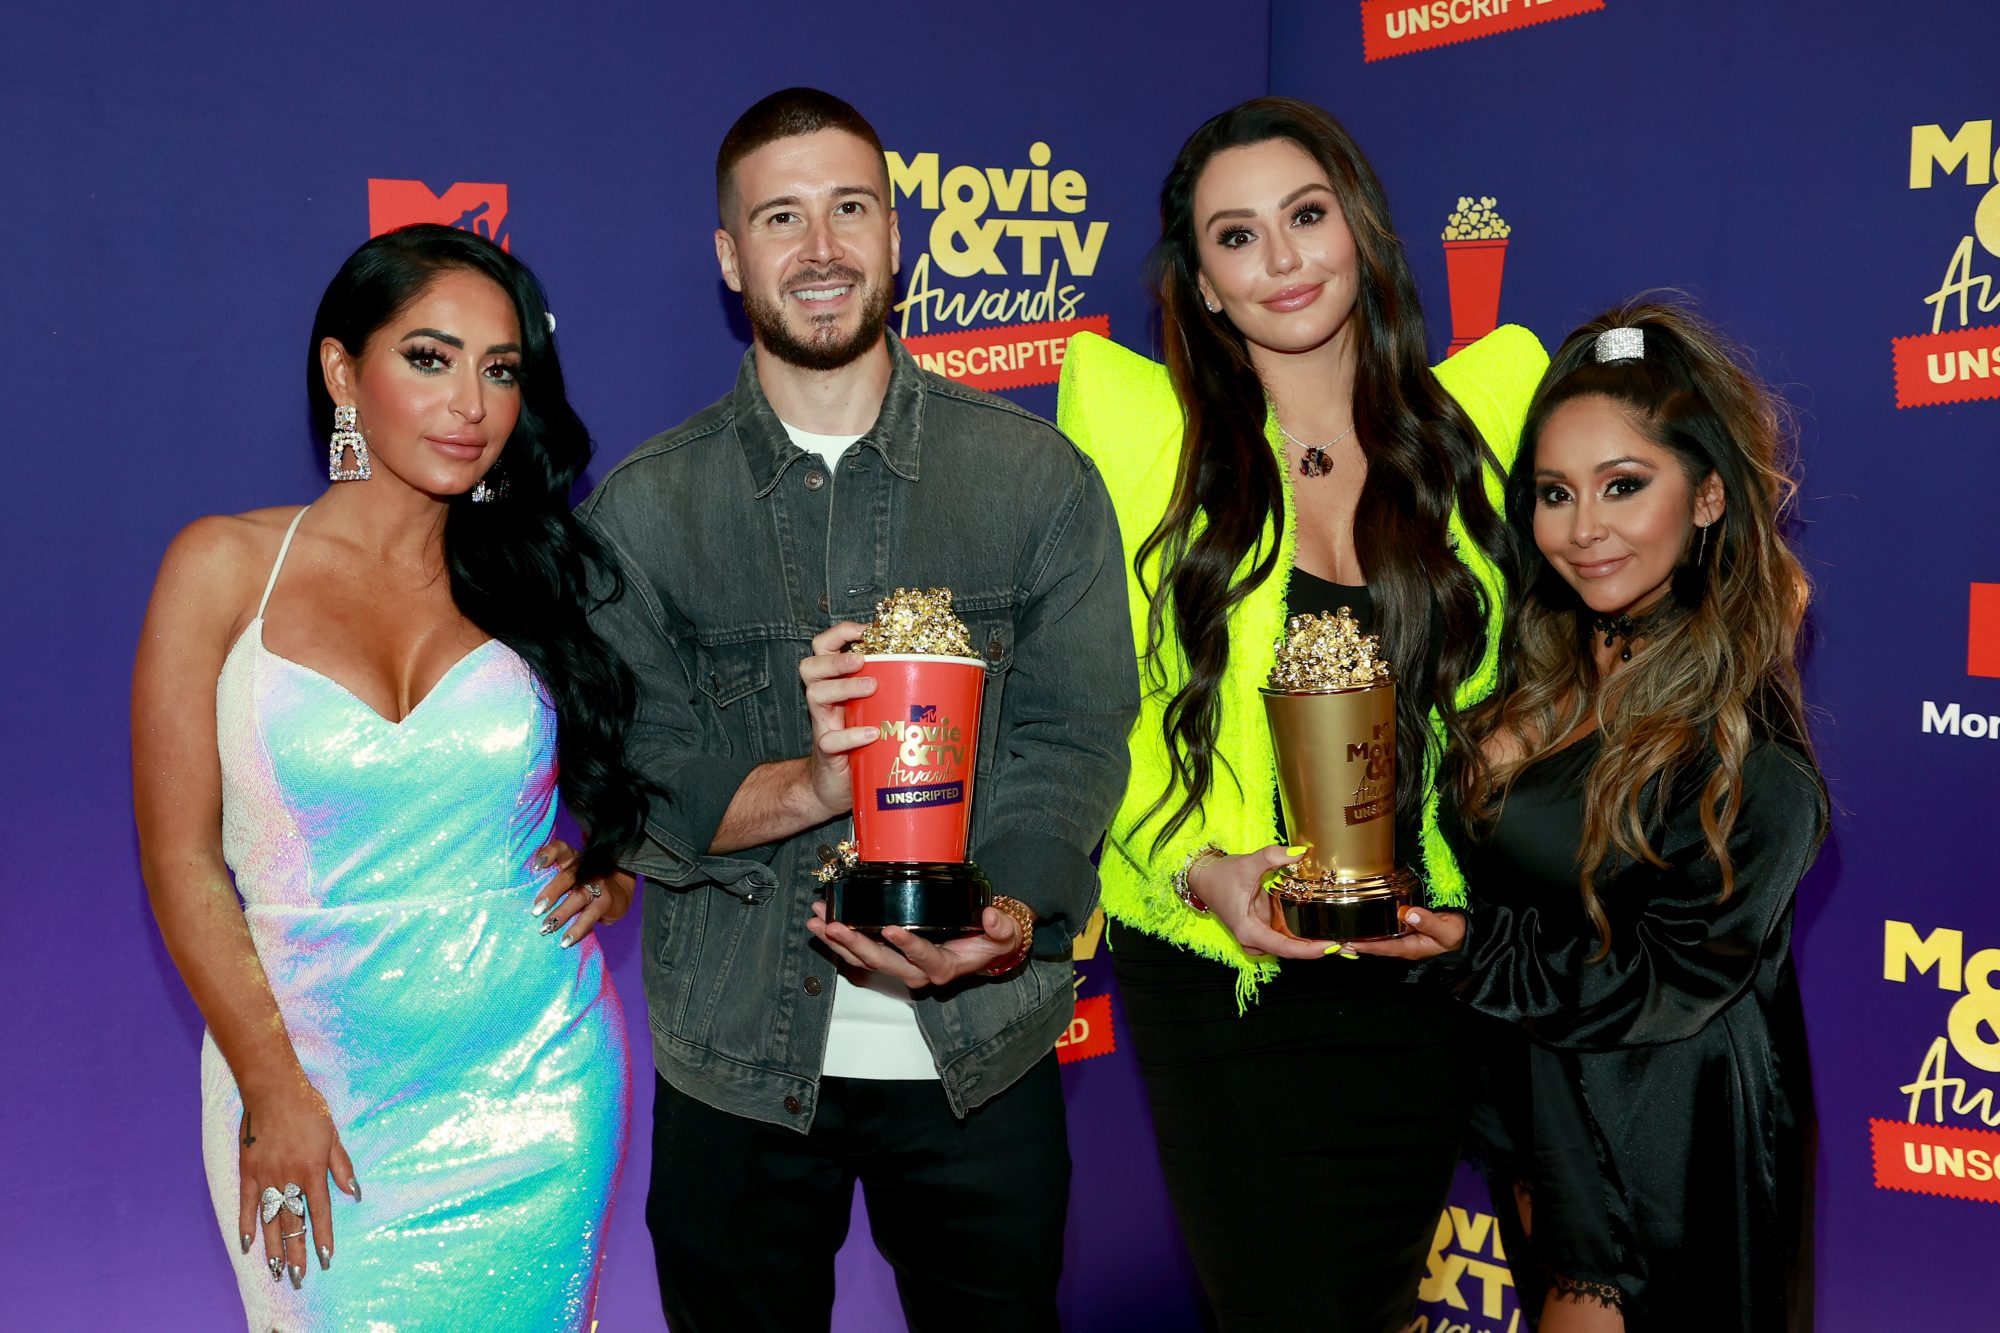 from the MTV Movie & TV Awards: UNSCRIPTED